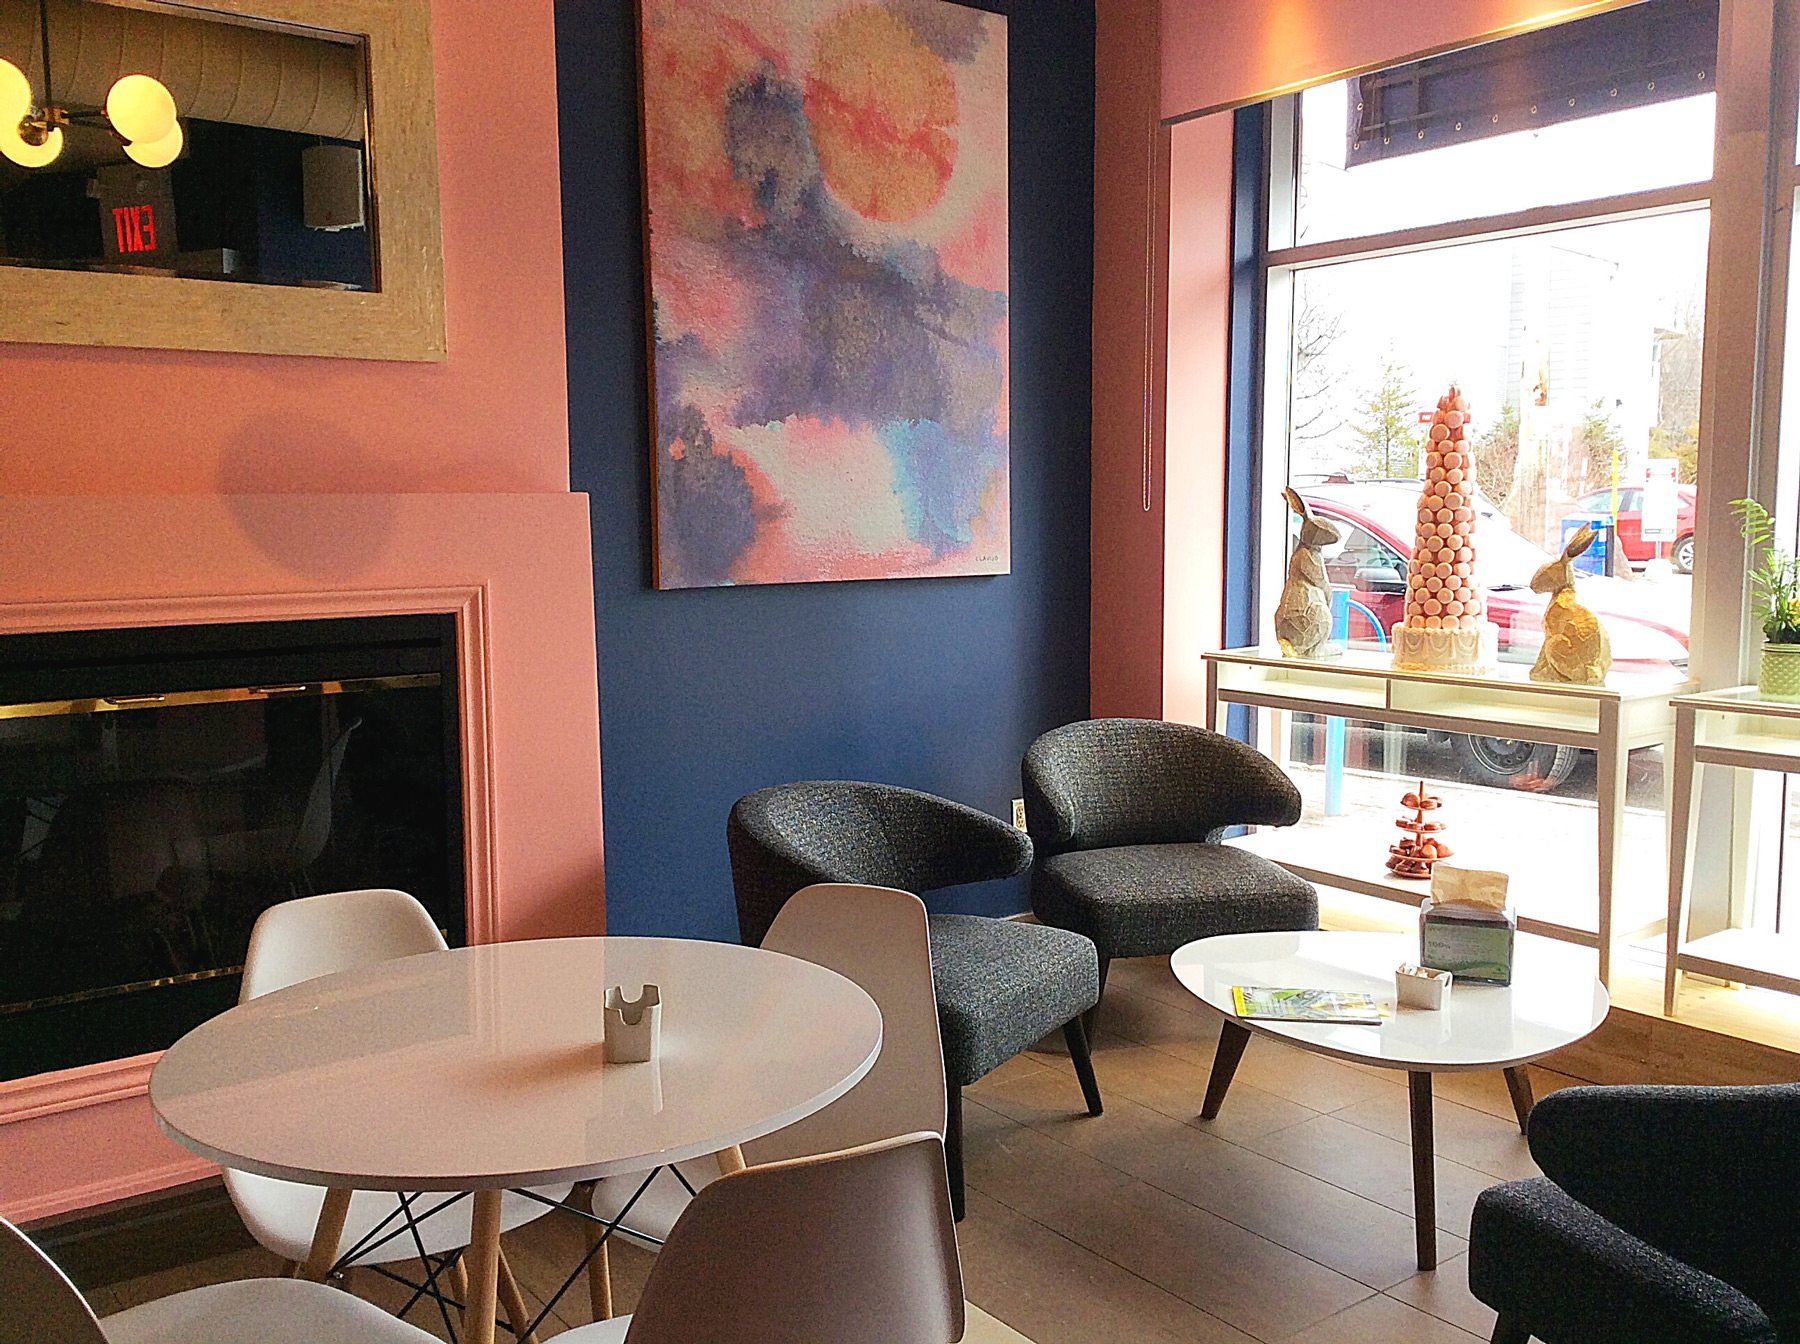 The coffee shop is bright and sunny with a pink and blue motif. In summer, the owners will open a rooftop terrace